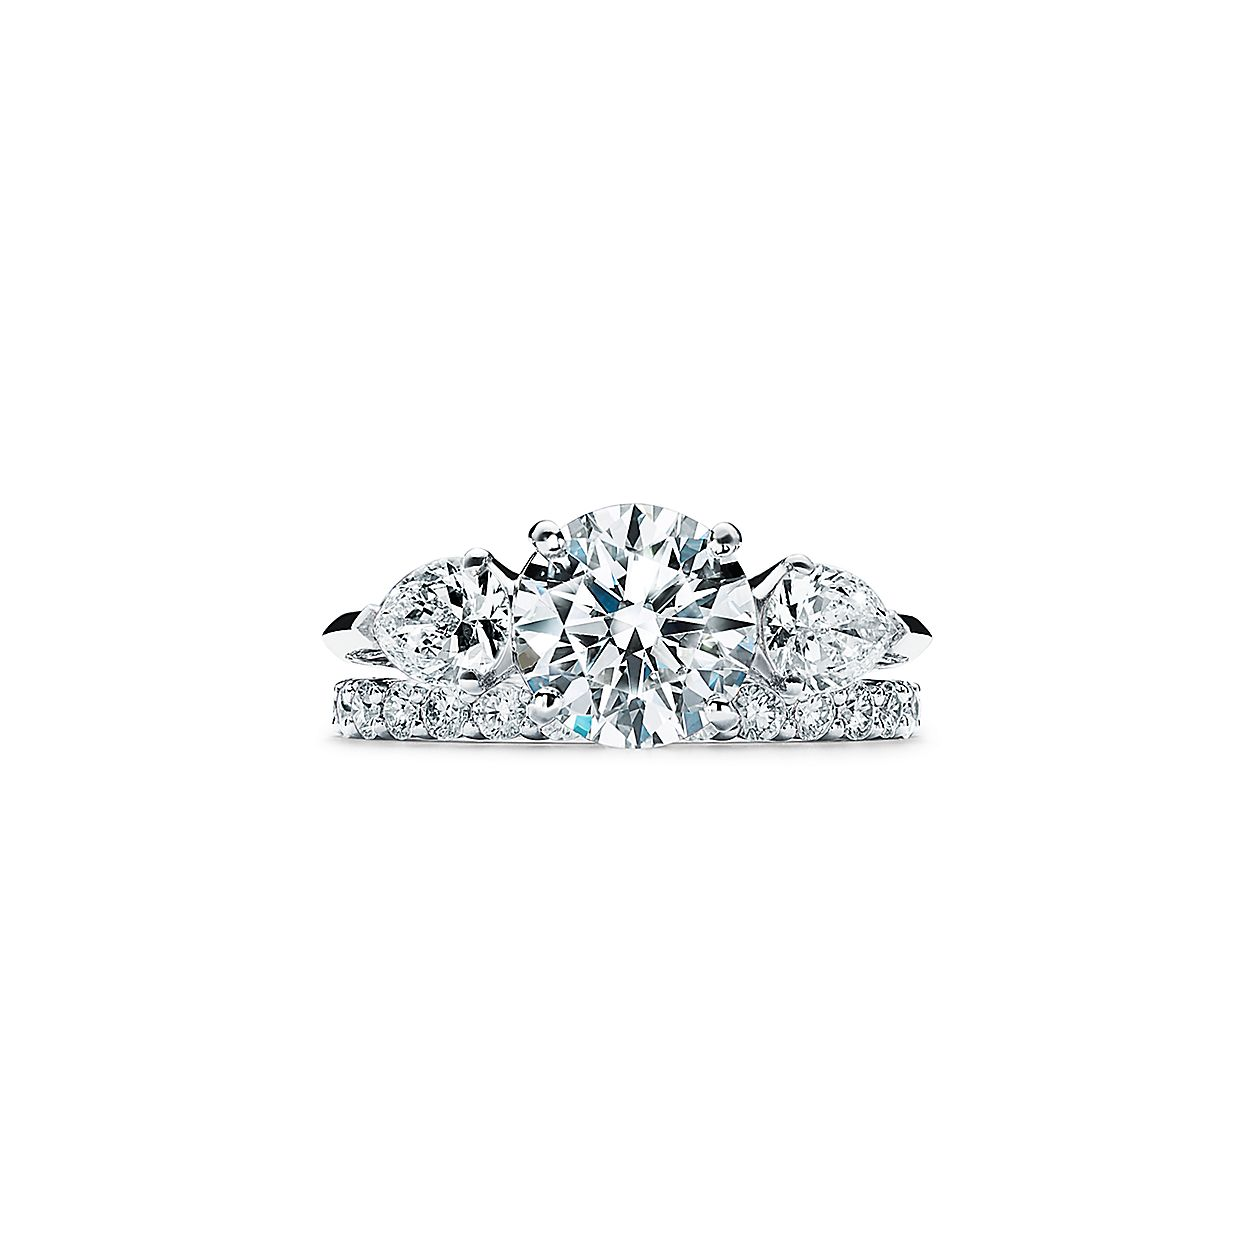 0bfa2ca67 Tiffany Three Stone Engagement Ring with Pear-shaped Side Stones in Platinum